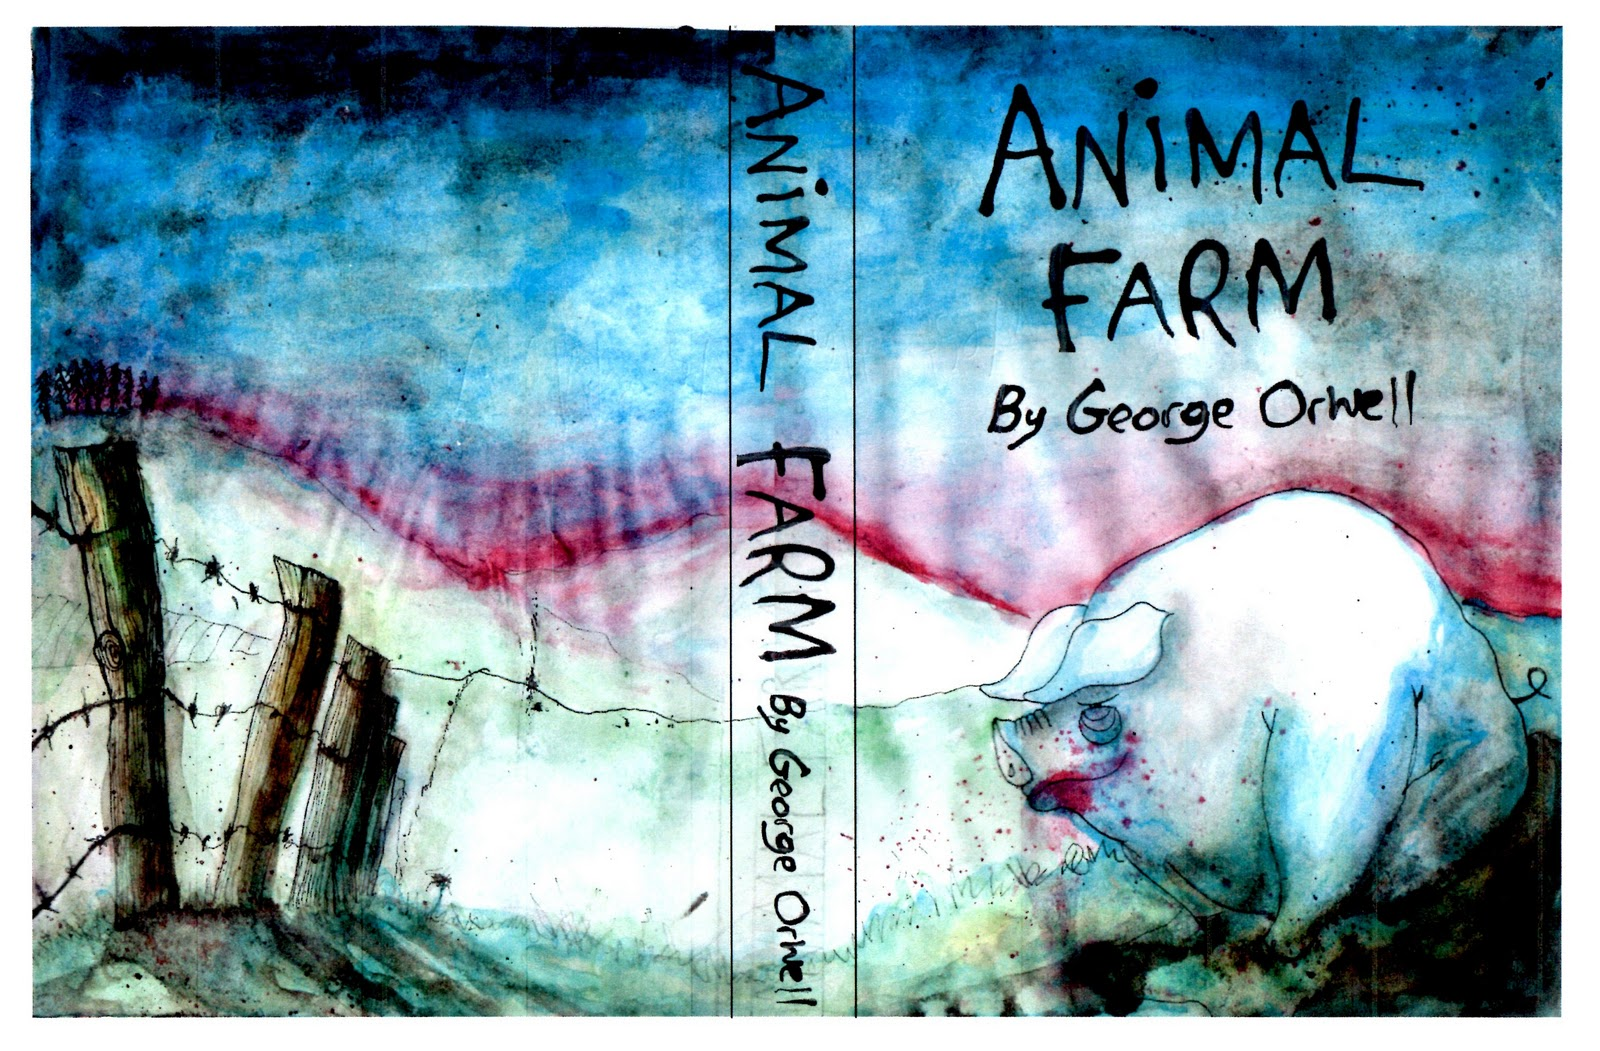 animal farm essay author george orwell